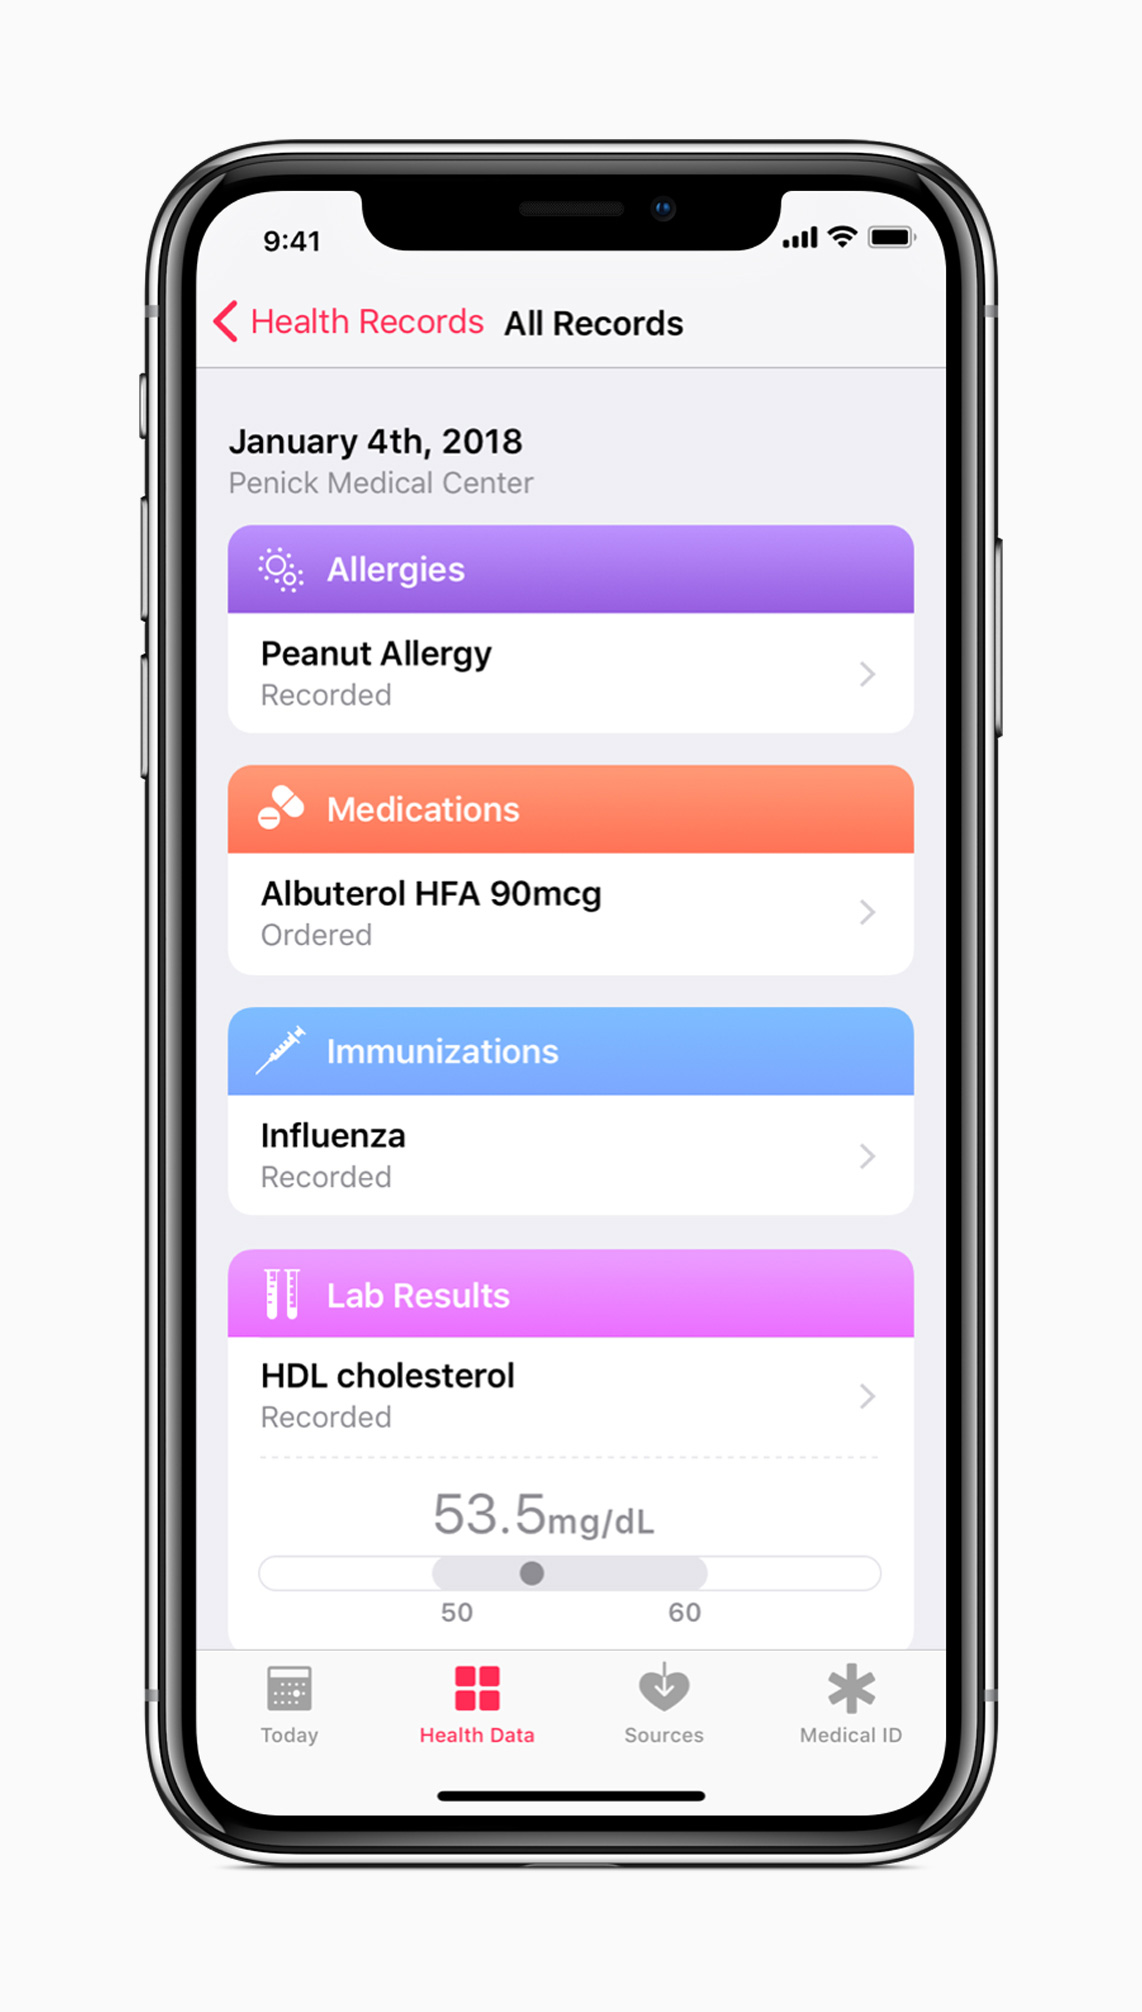 Iphone X Health Records Screen 01232018